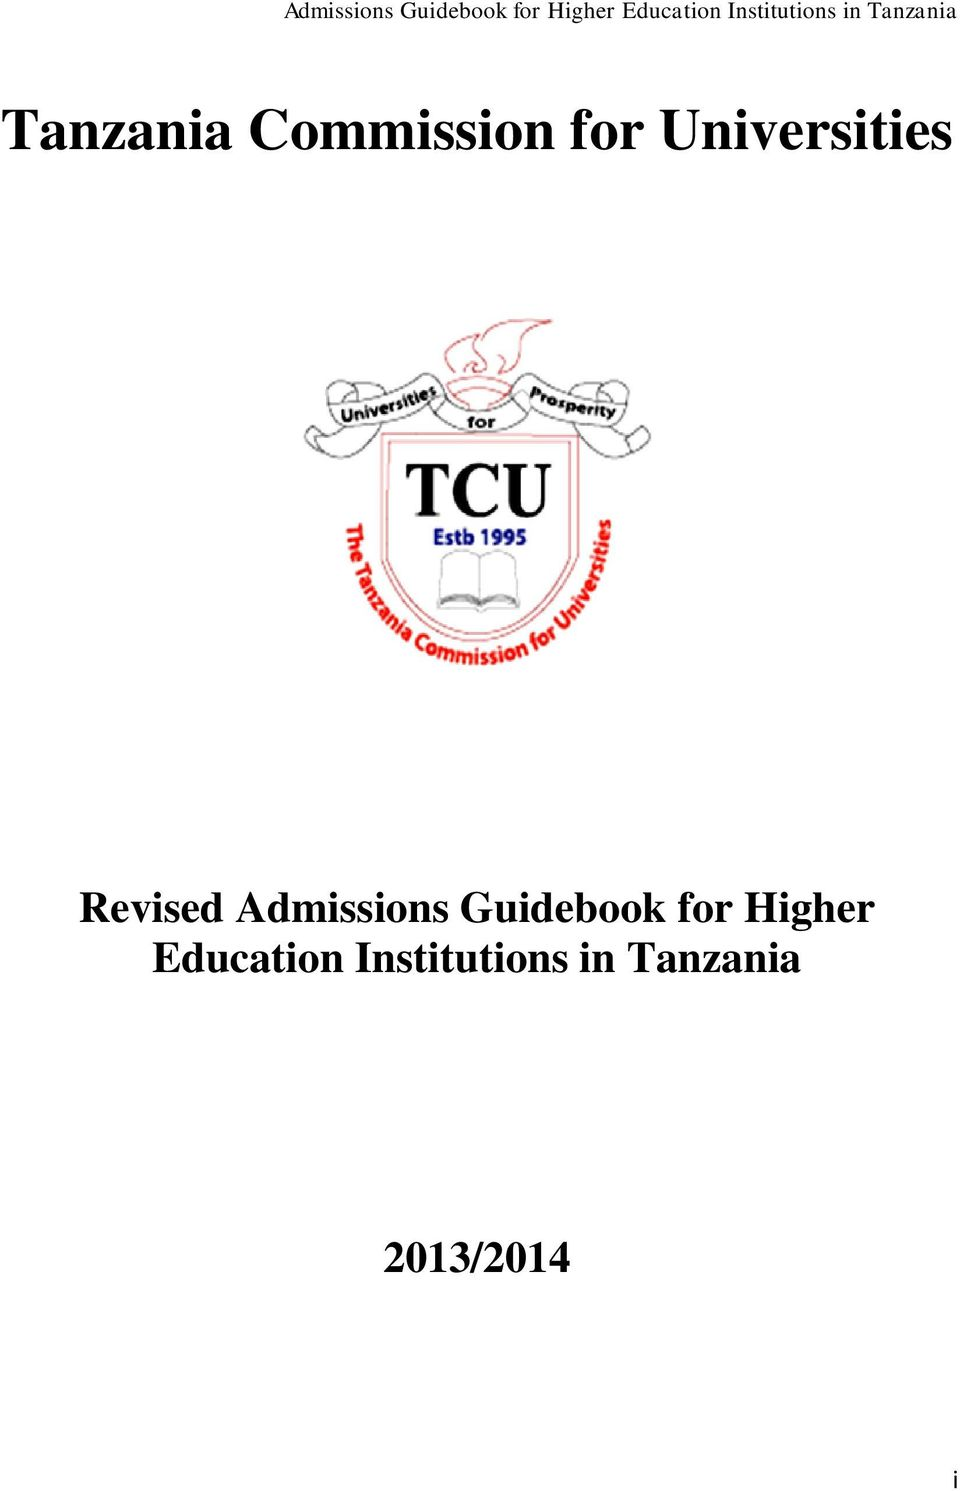 Tcu Guide Book 2017/18 Pdf